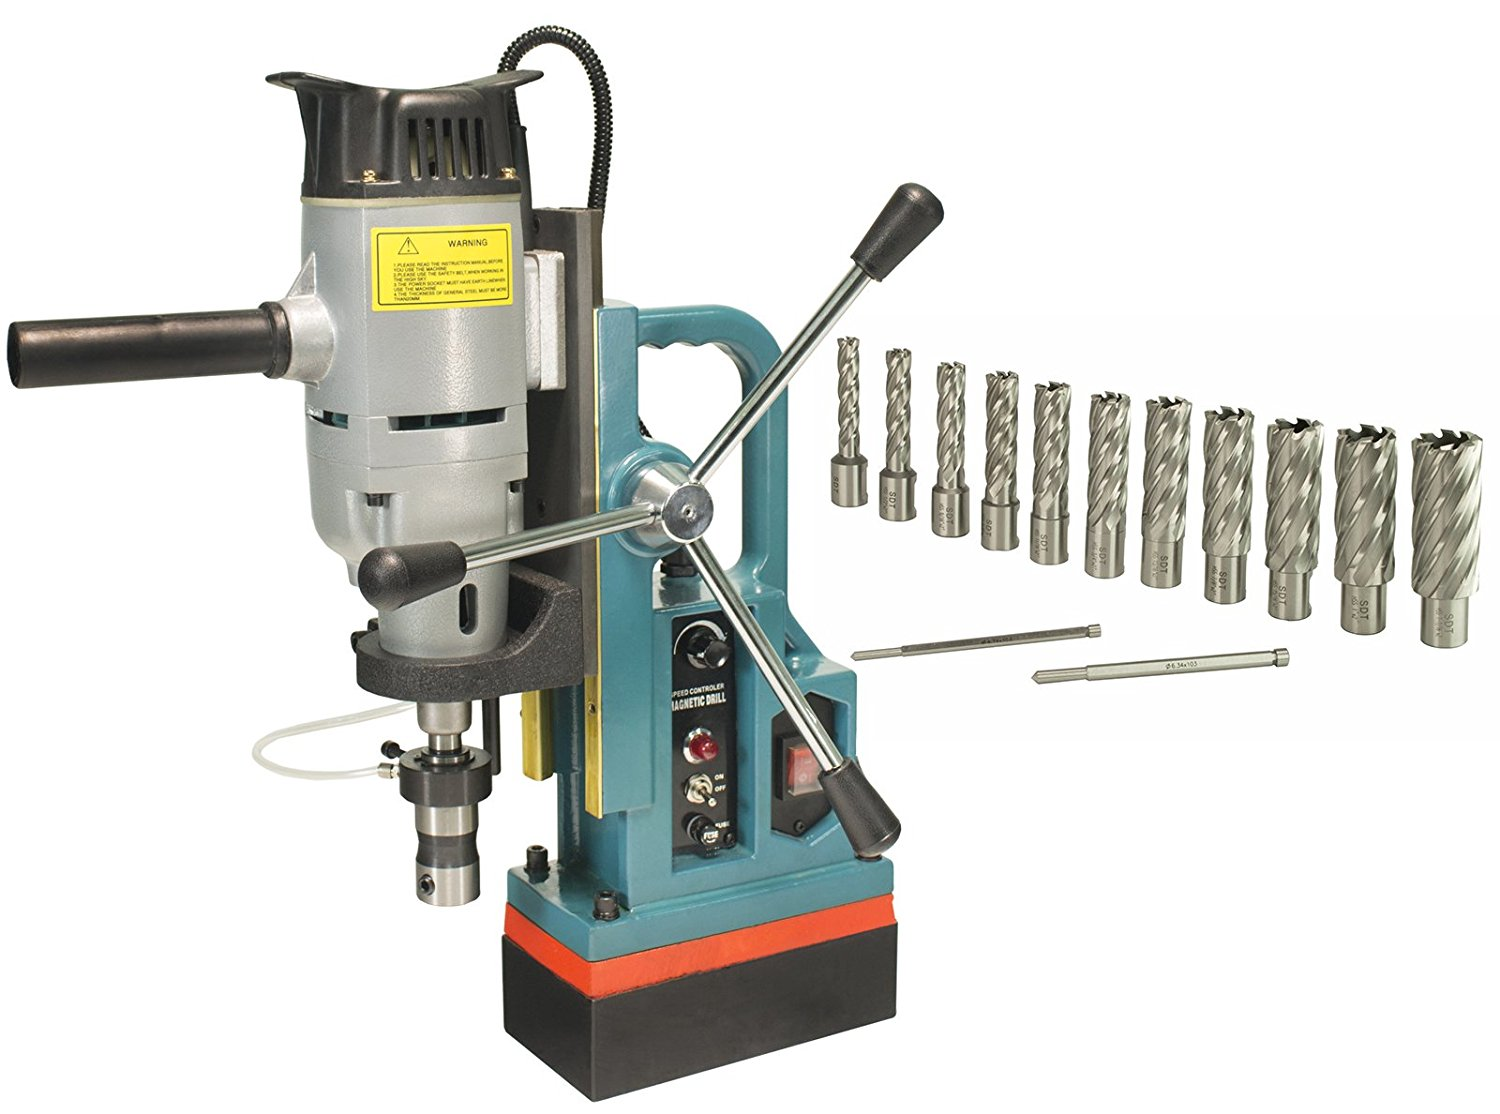 Steel Dragon Tools MD45 Magnetic Drill Press with 1-3/4